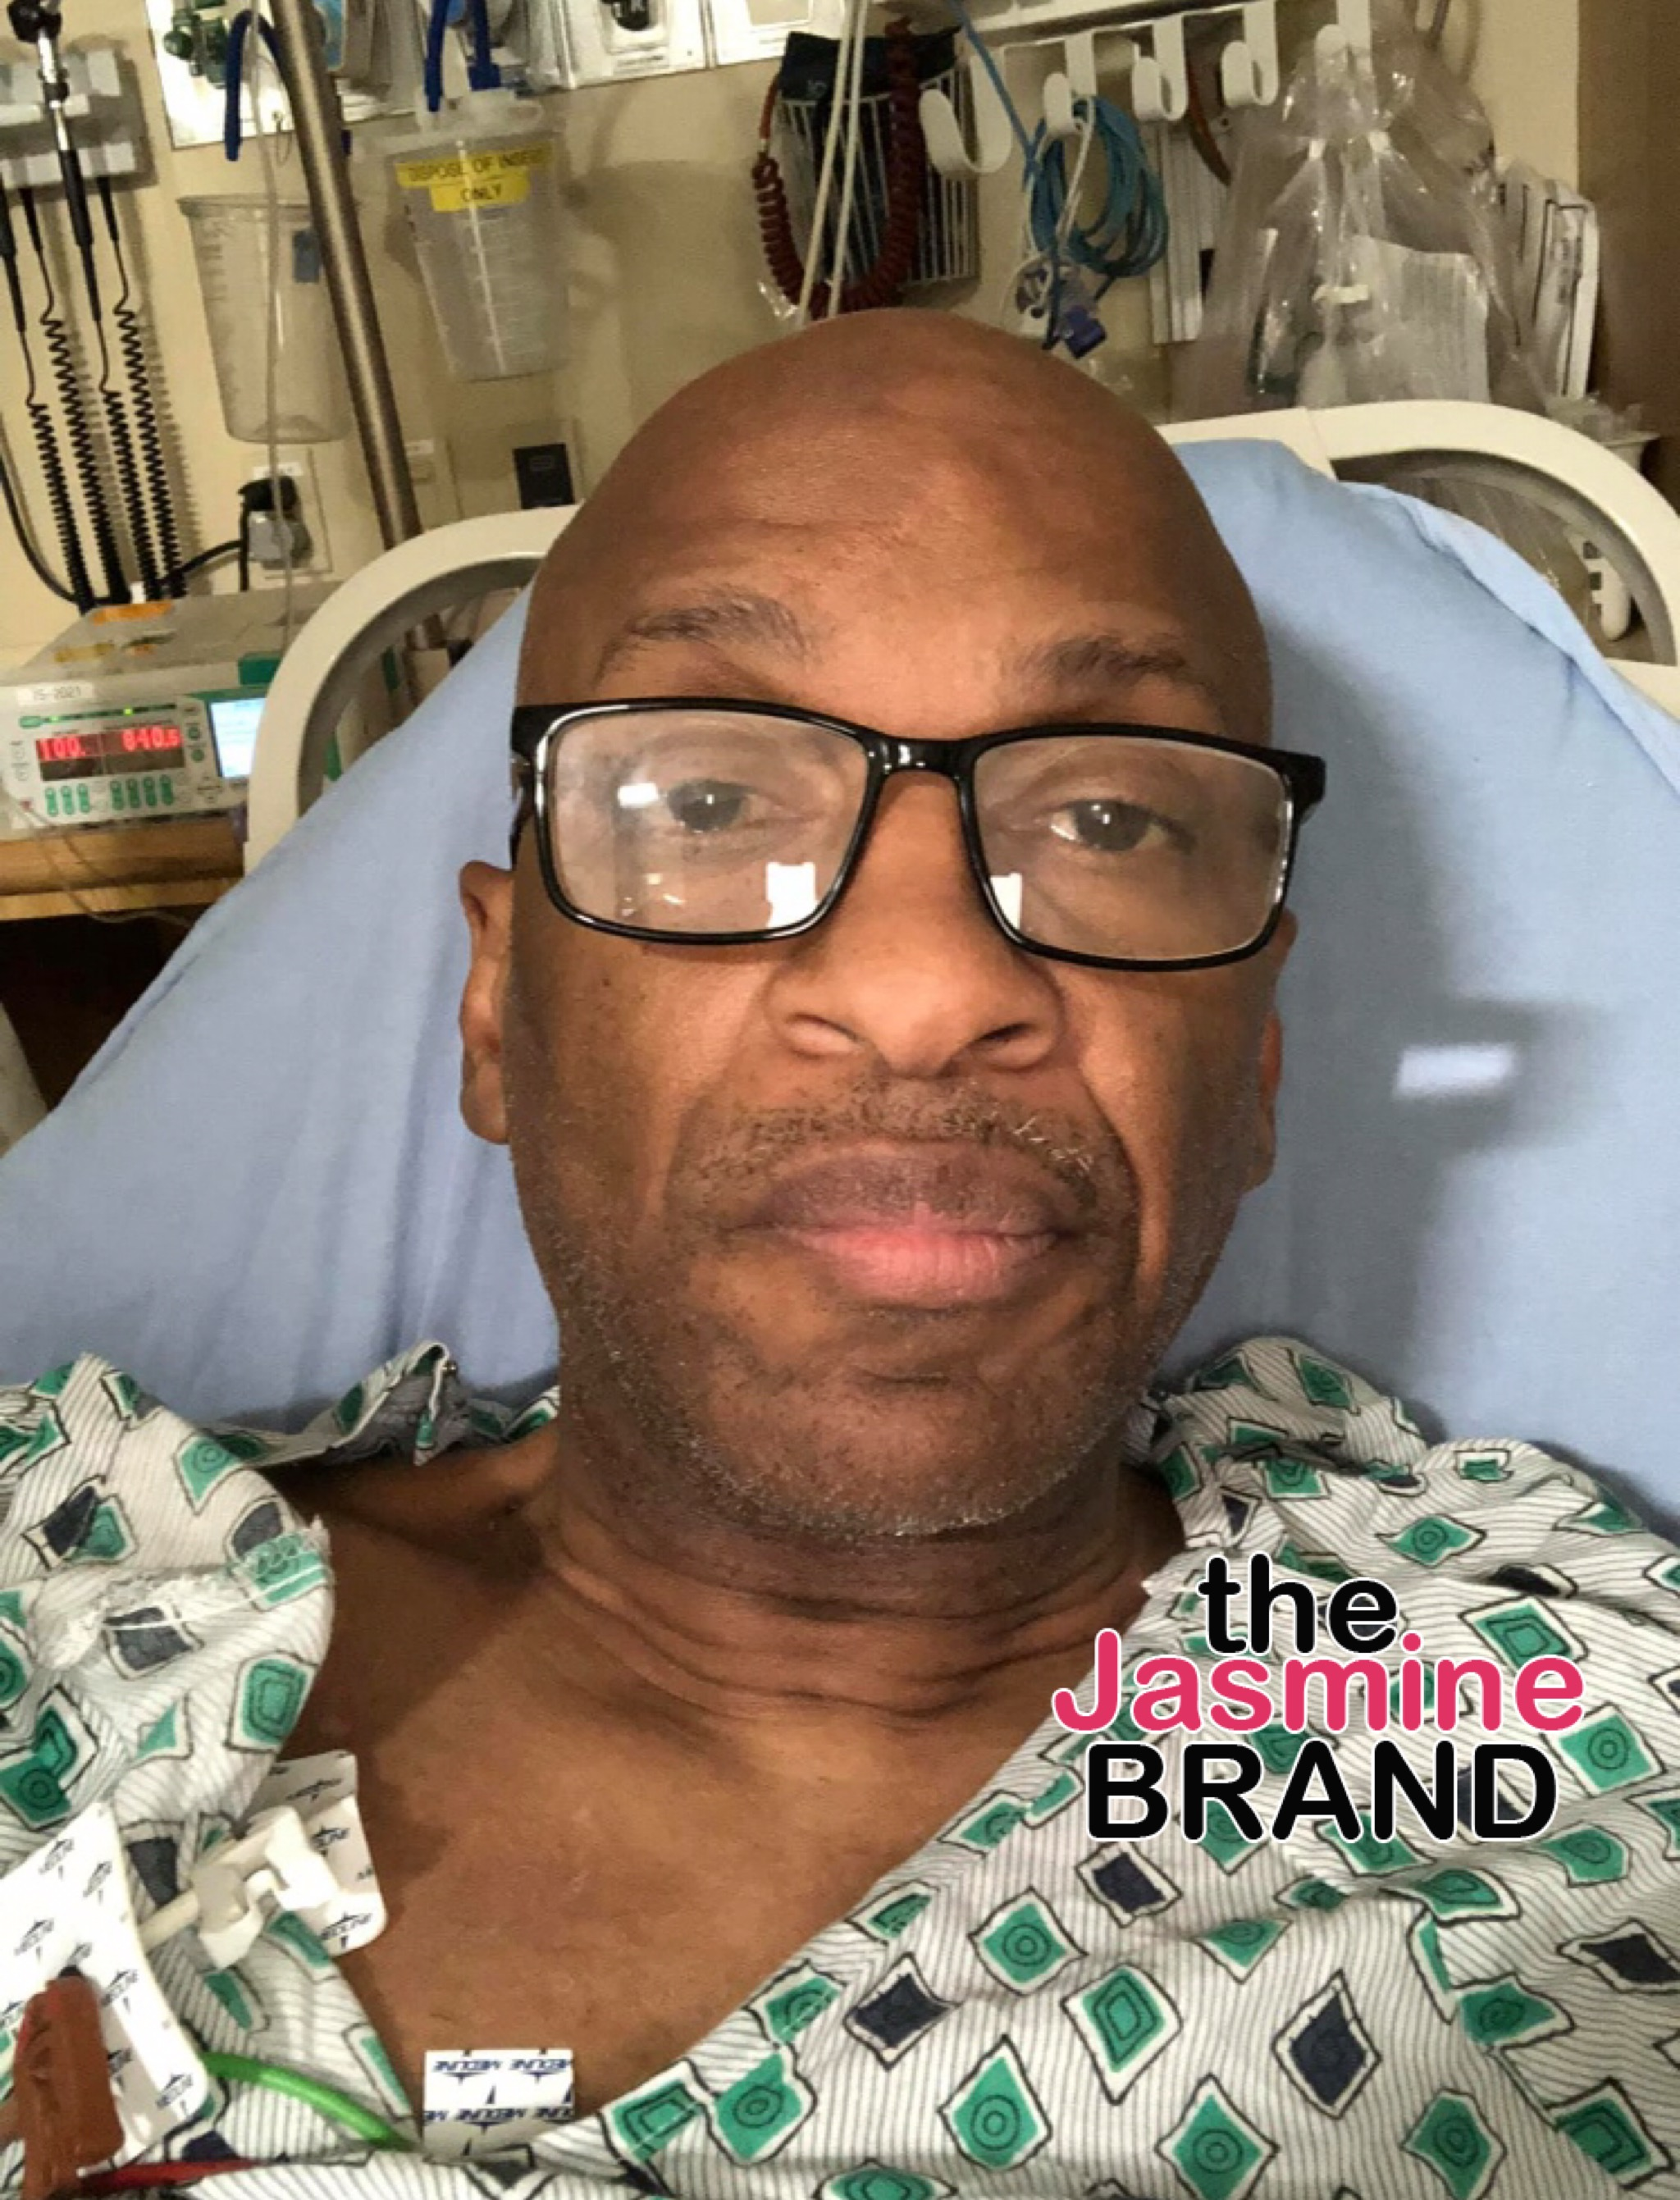 Gospel Singer Donnie Mcclurkin Crashes Car After Falling Asleep At